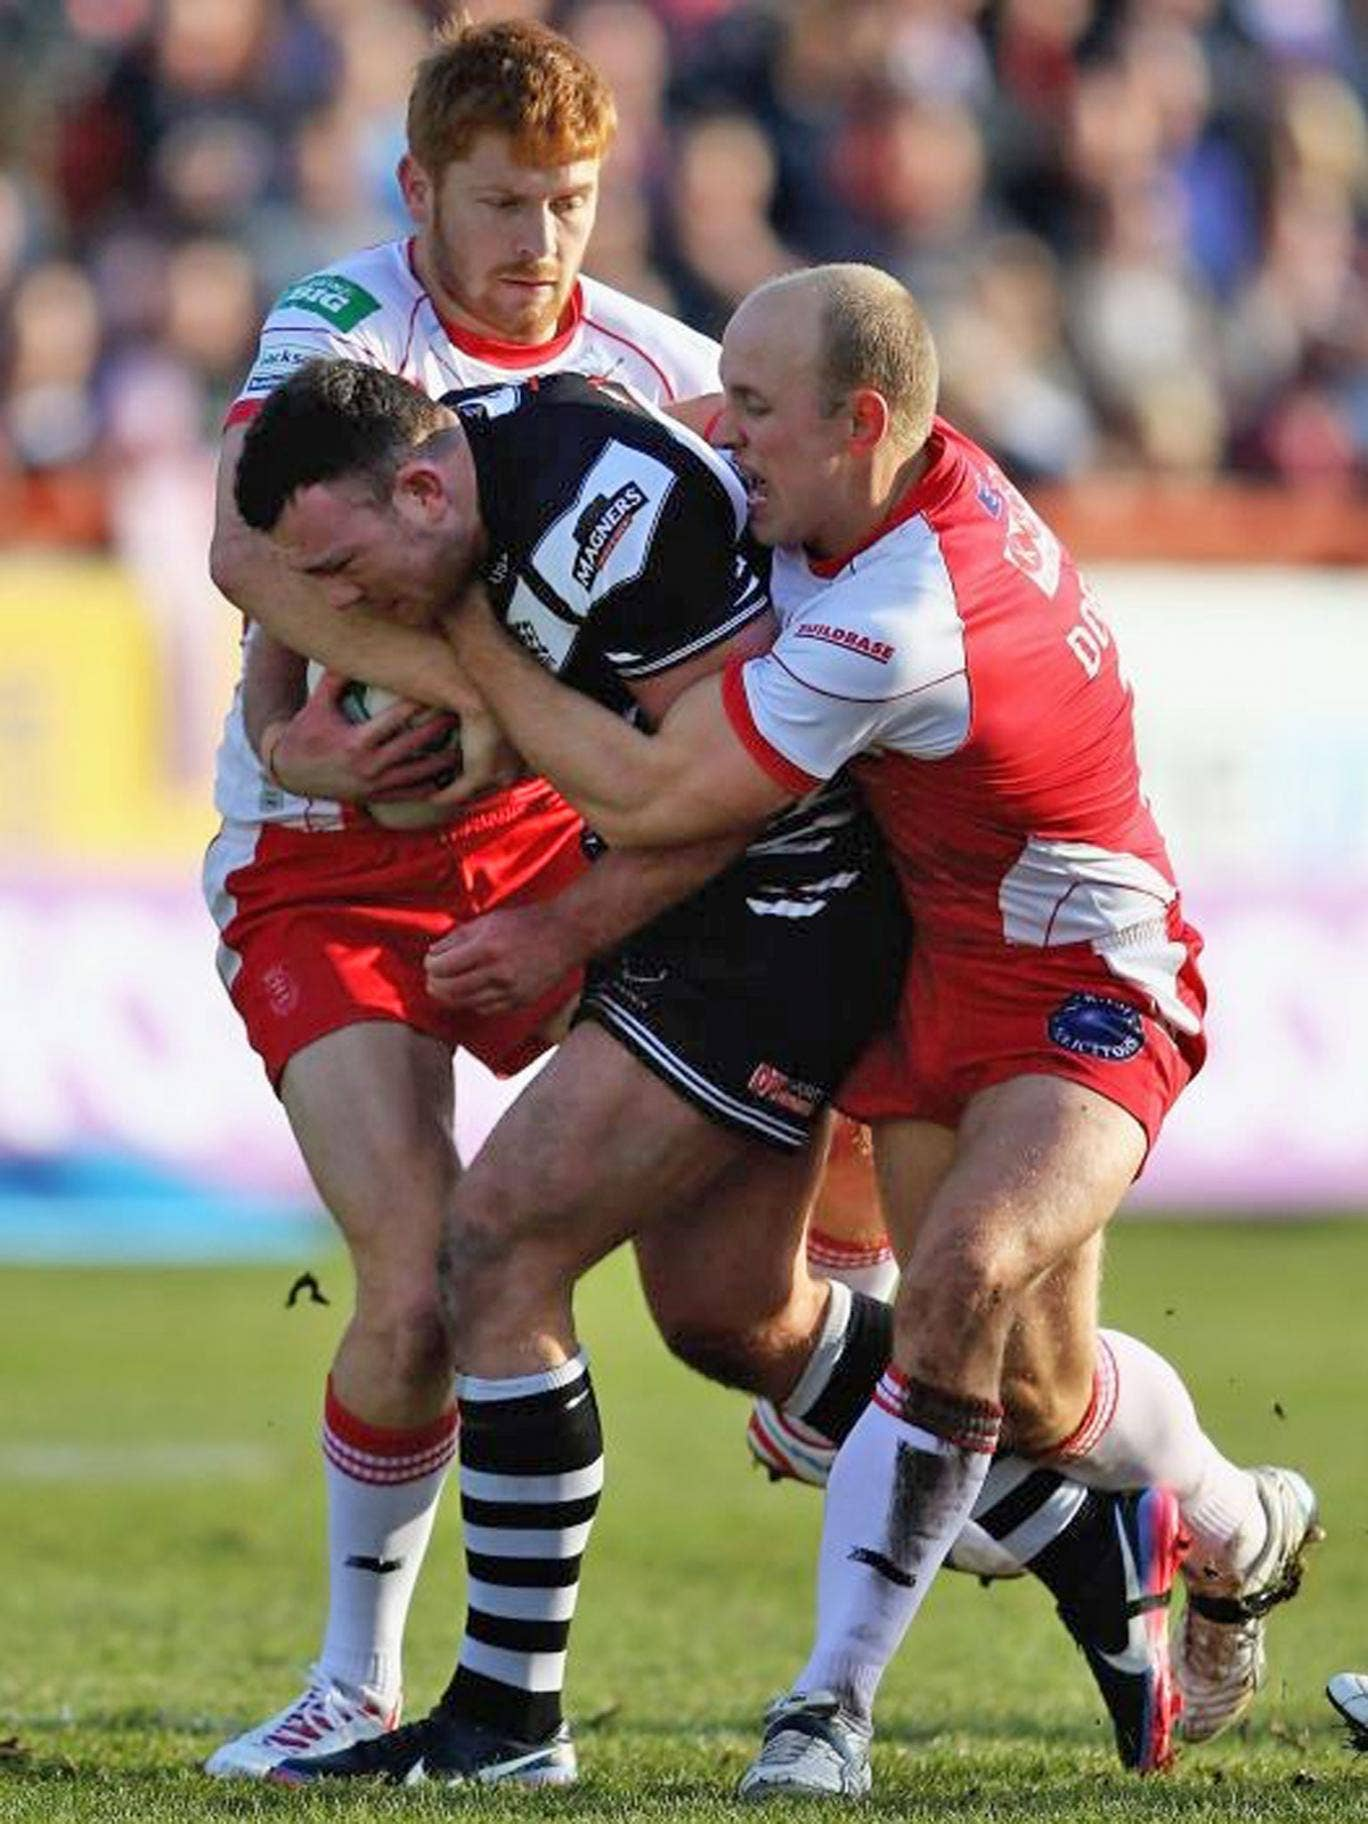 Stefan Marsh, of Widnes, is tackled by Hull KR's Michael Dobson and Kris Welham